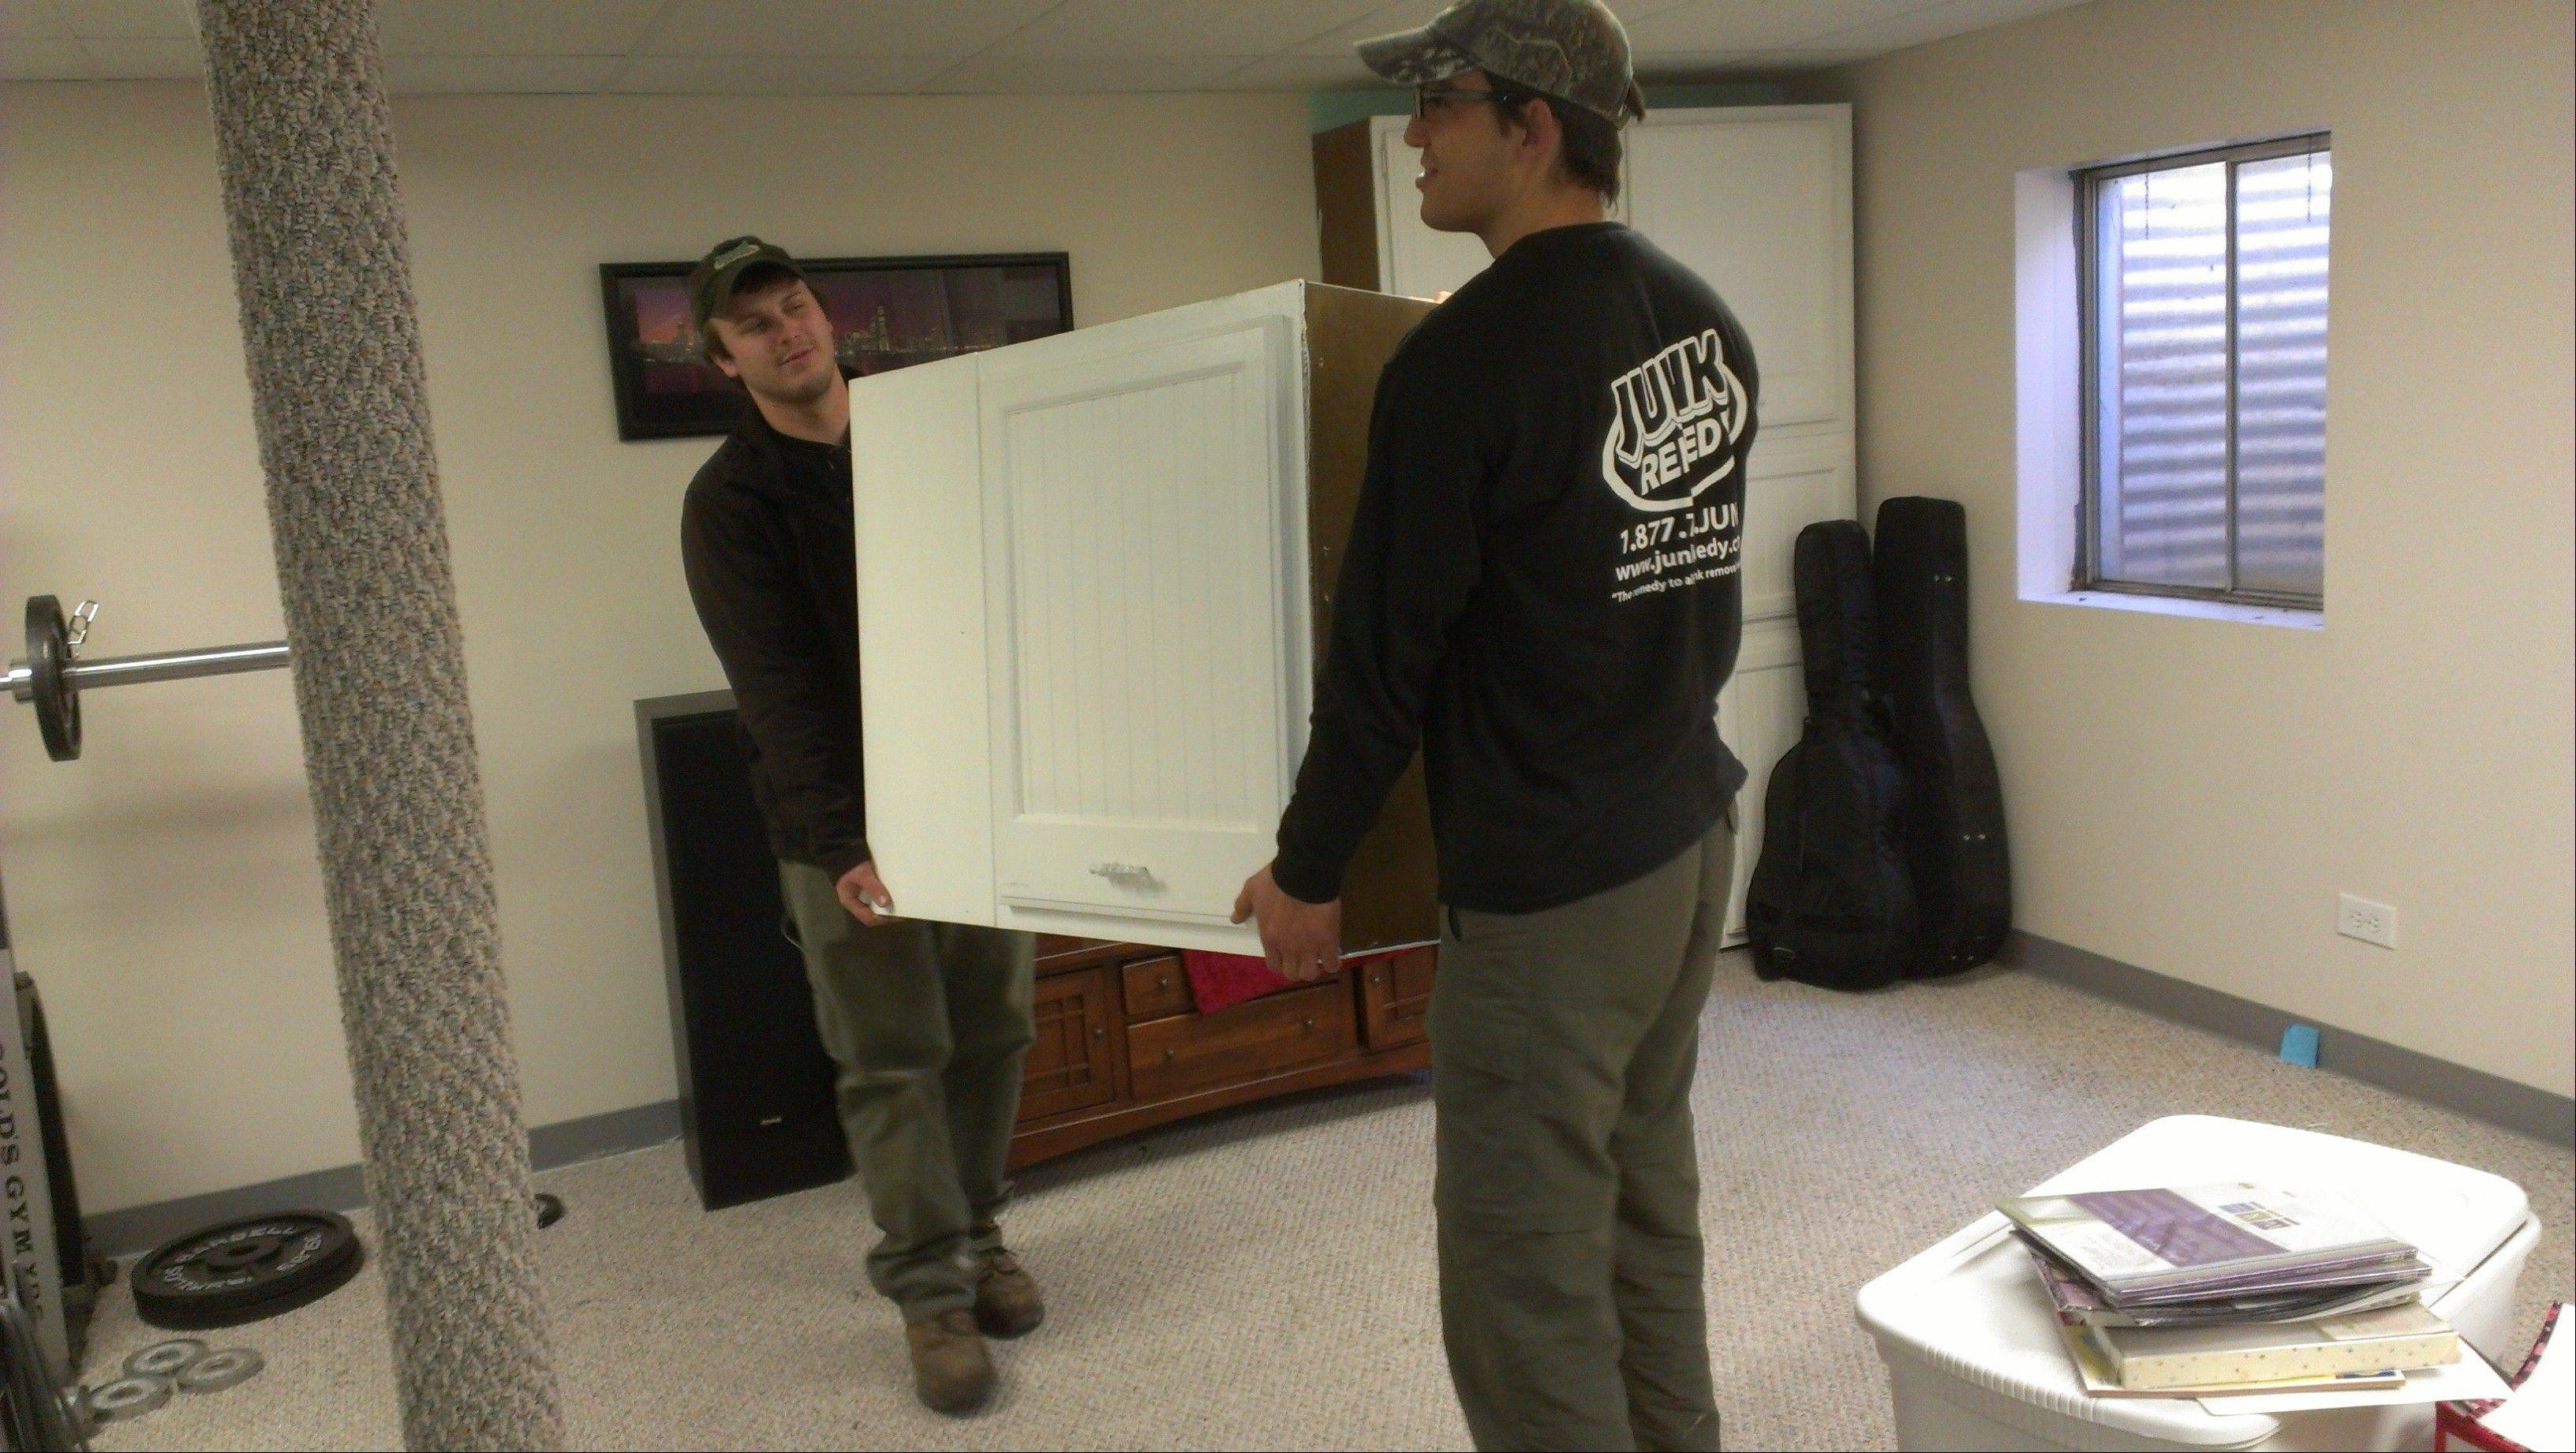 Zack Compton and Derek Moser of Junk Remedy in Lake Zurich remove a cabinet from a home remodeling job.